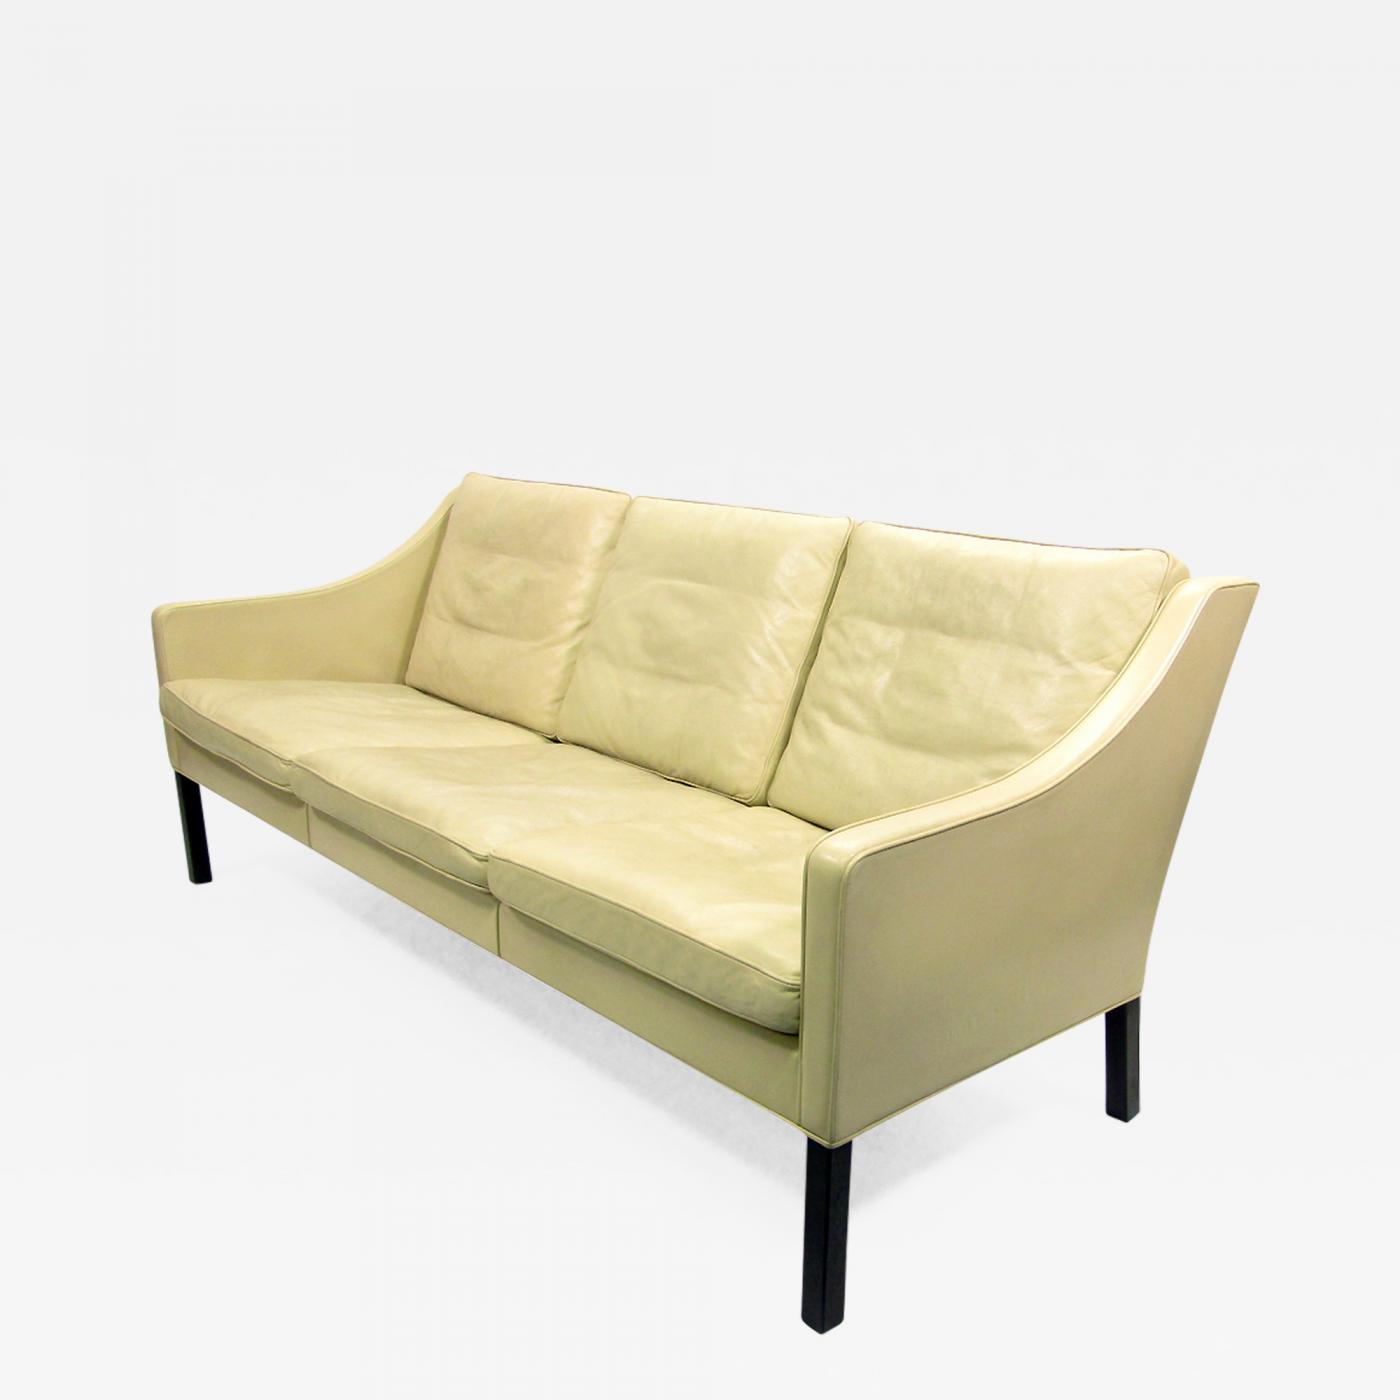 borge mogensen sofa model 2209 sofaworks reading reviews 1970s danish in leather by listings furniture seating settees